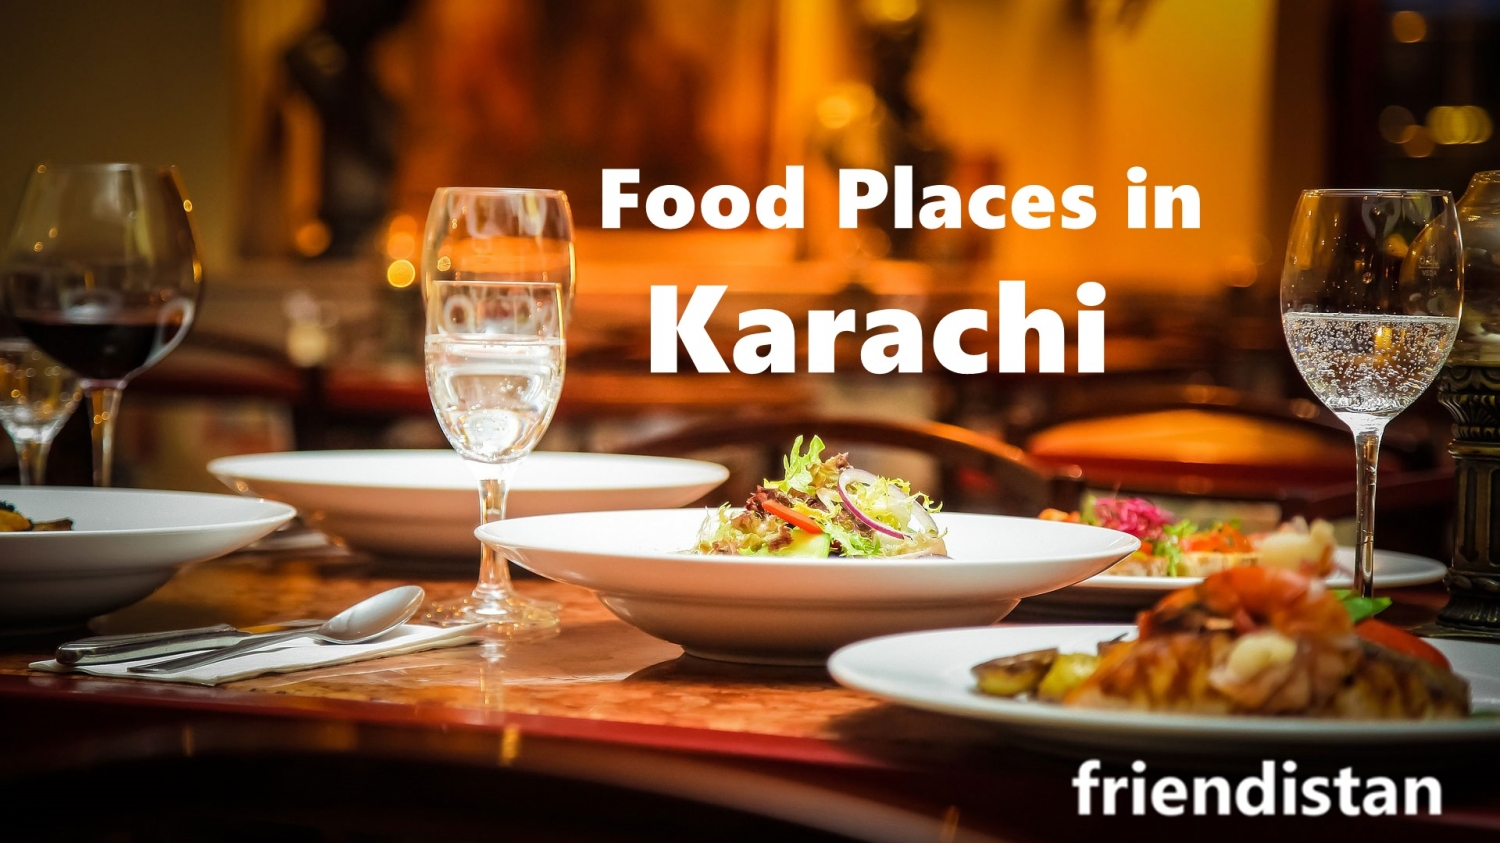 food places in karachi